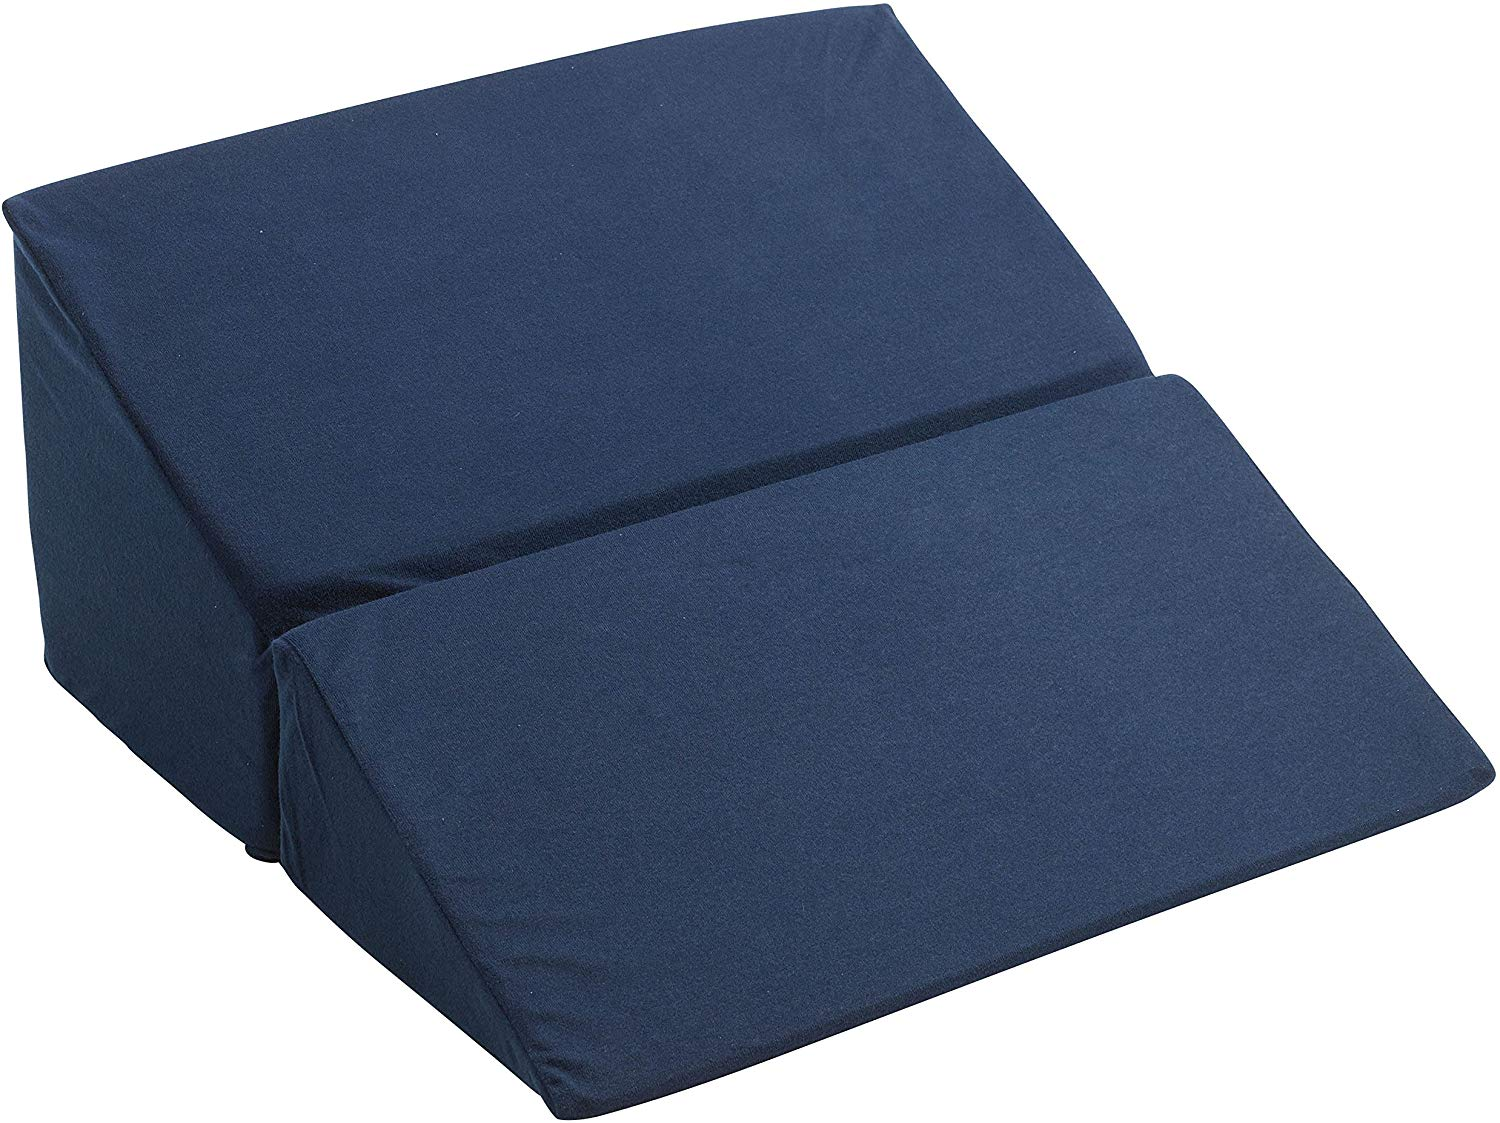 Drive Medical best acid reflux pillow review by www.dailysleep.org